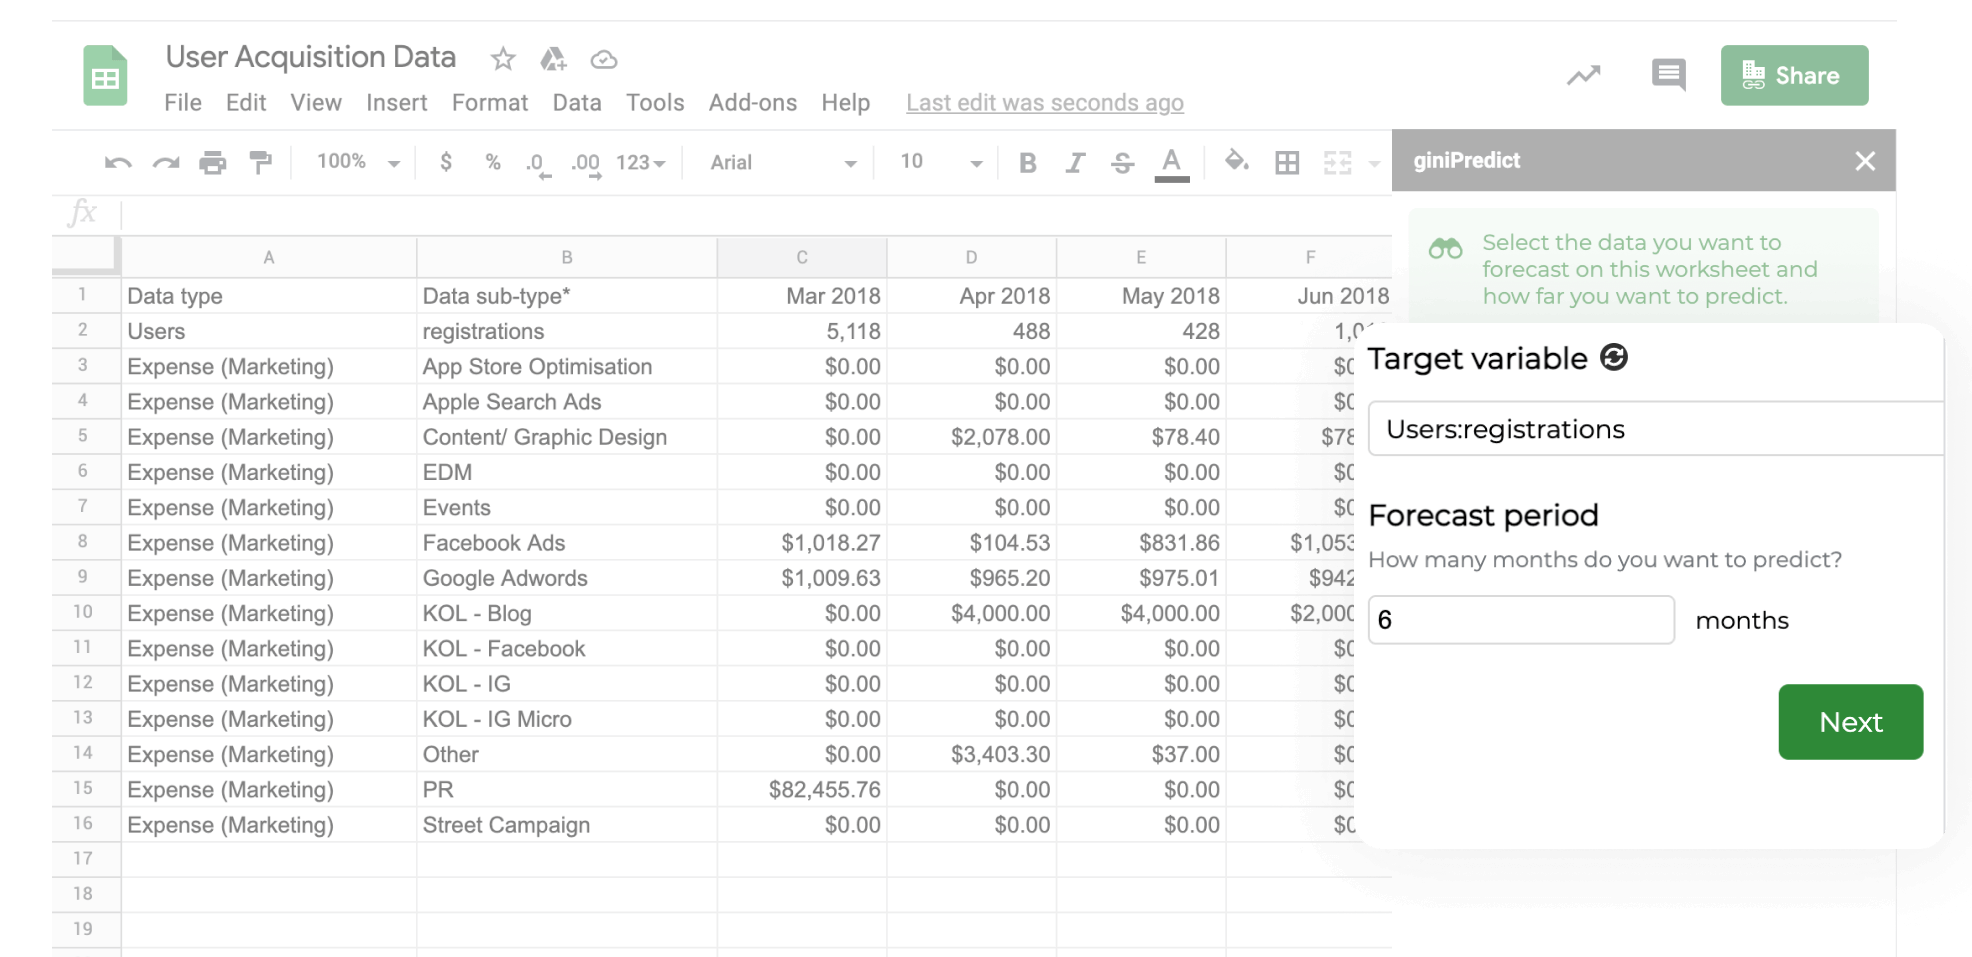 giniPredict Google Sheet add-on | How to predict user acquisition with machine learning